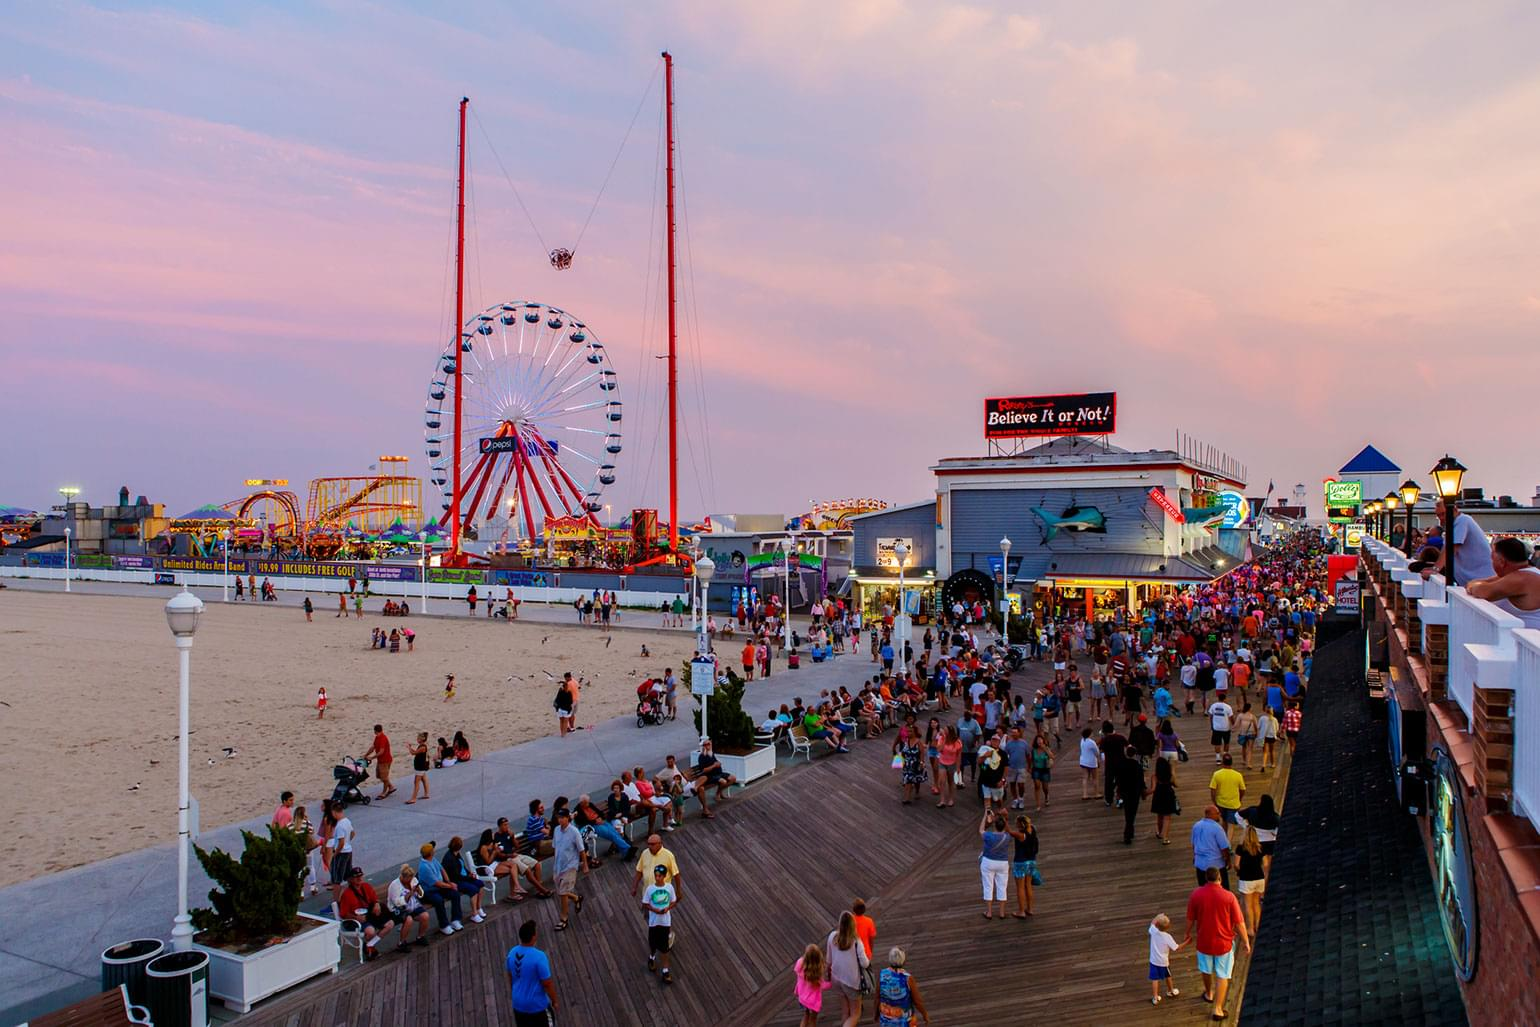 Dusk in Ocean City, Maryland with the boardwalk amusement park lit up.